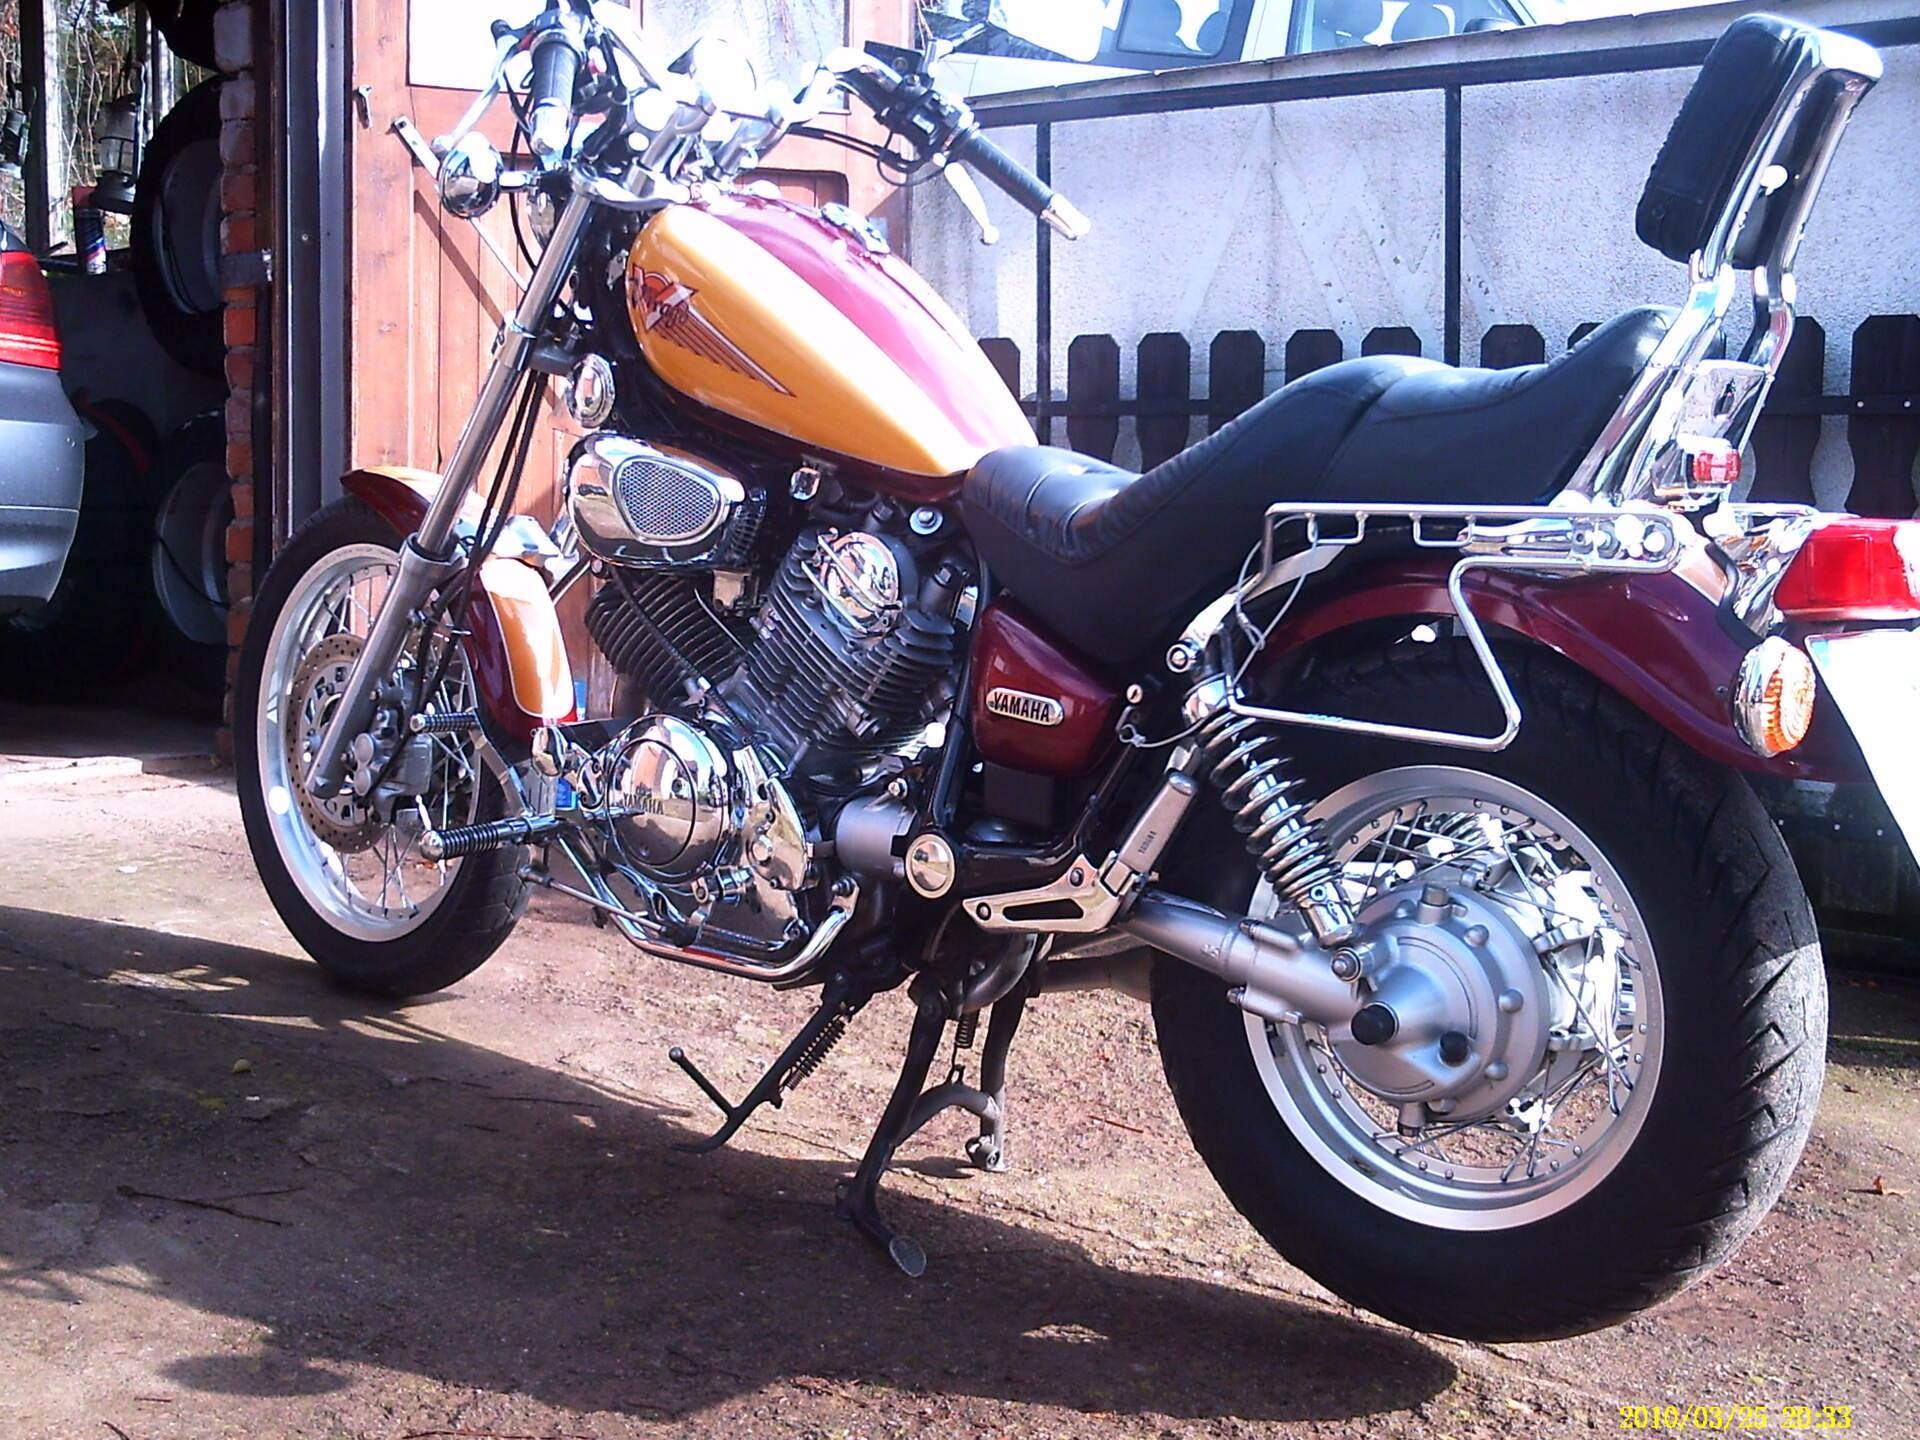 Xv920 Virago Wiring Diagram Page 3 And Schematics 1100 1982 Yamaha Xj Elsalvadorla Diagrams Online